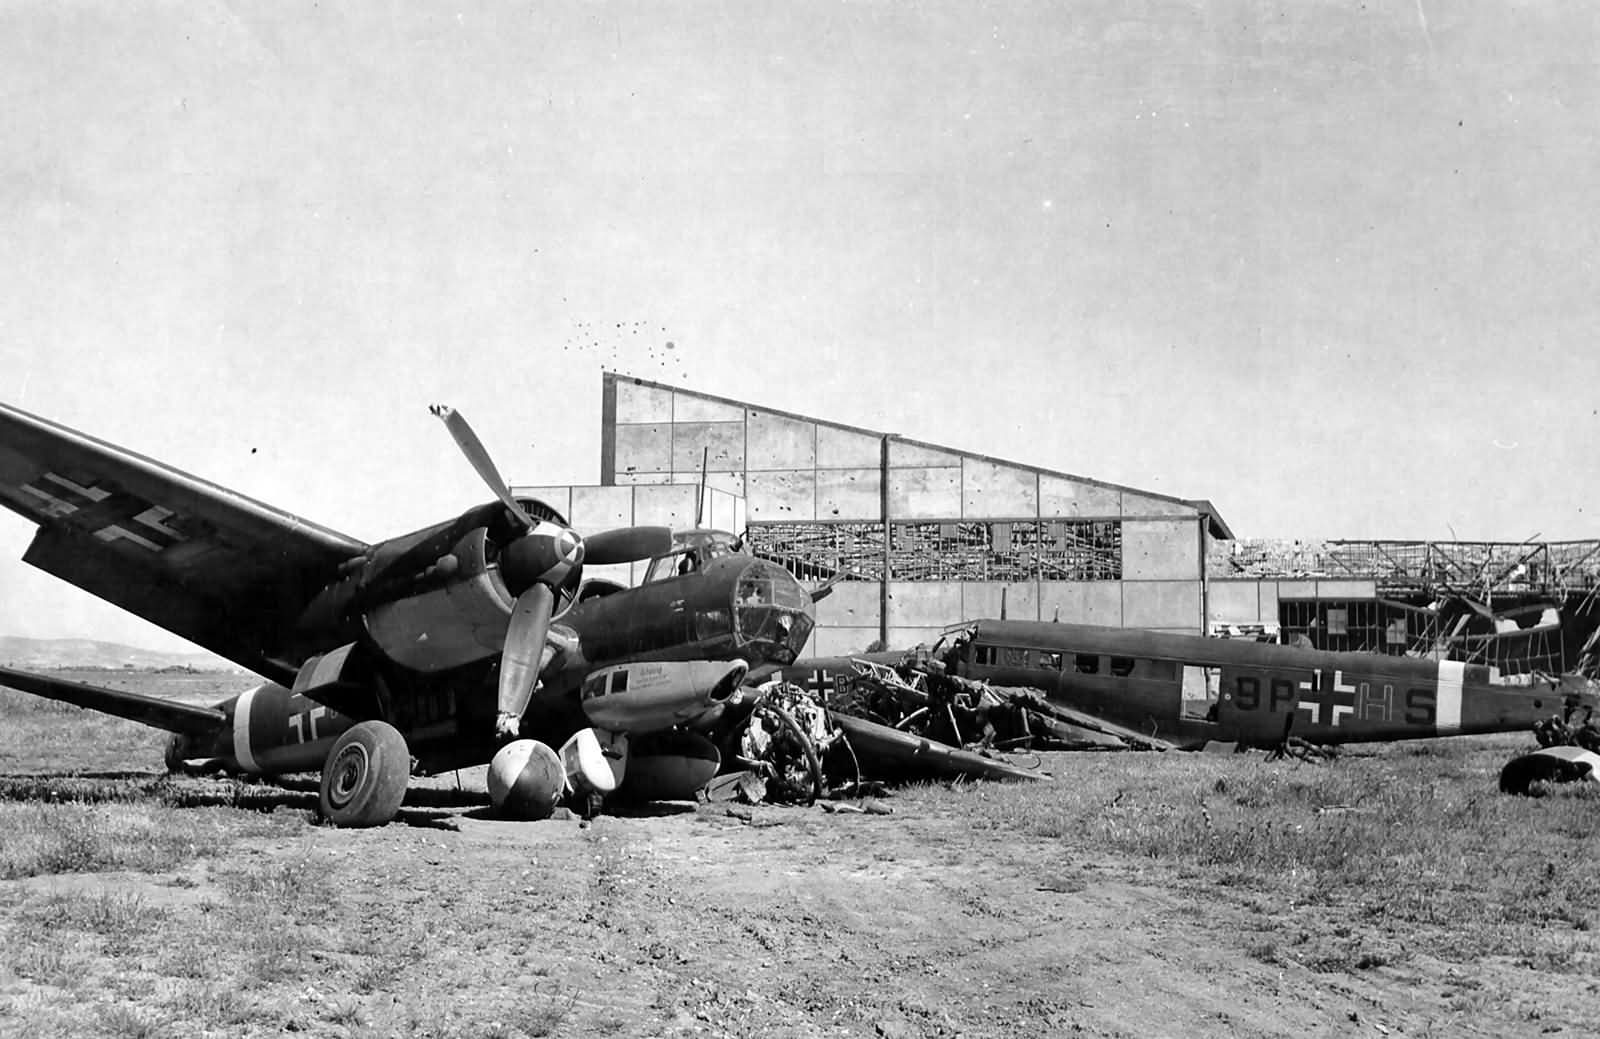 Junkers Ju 88 and Ju52 9P+HS of Kampfgruppe zbV 9 Tunisia